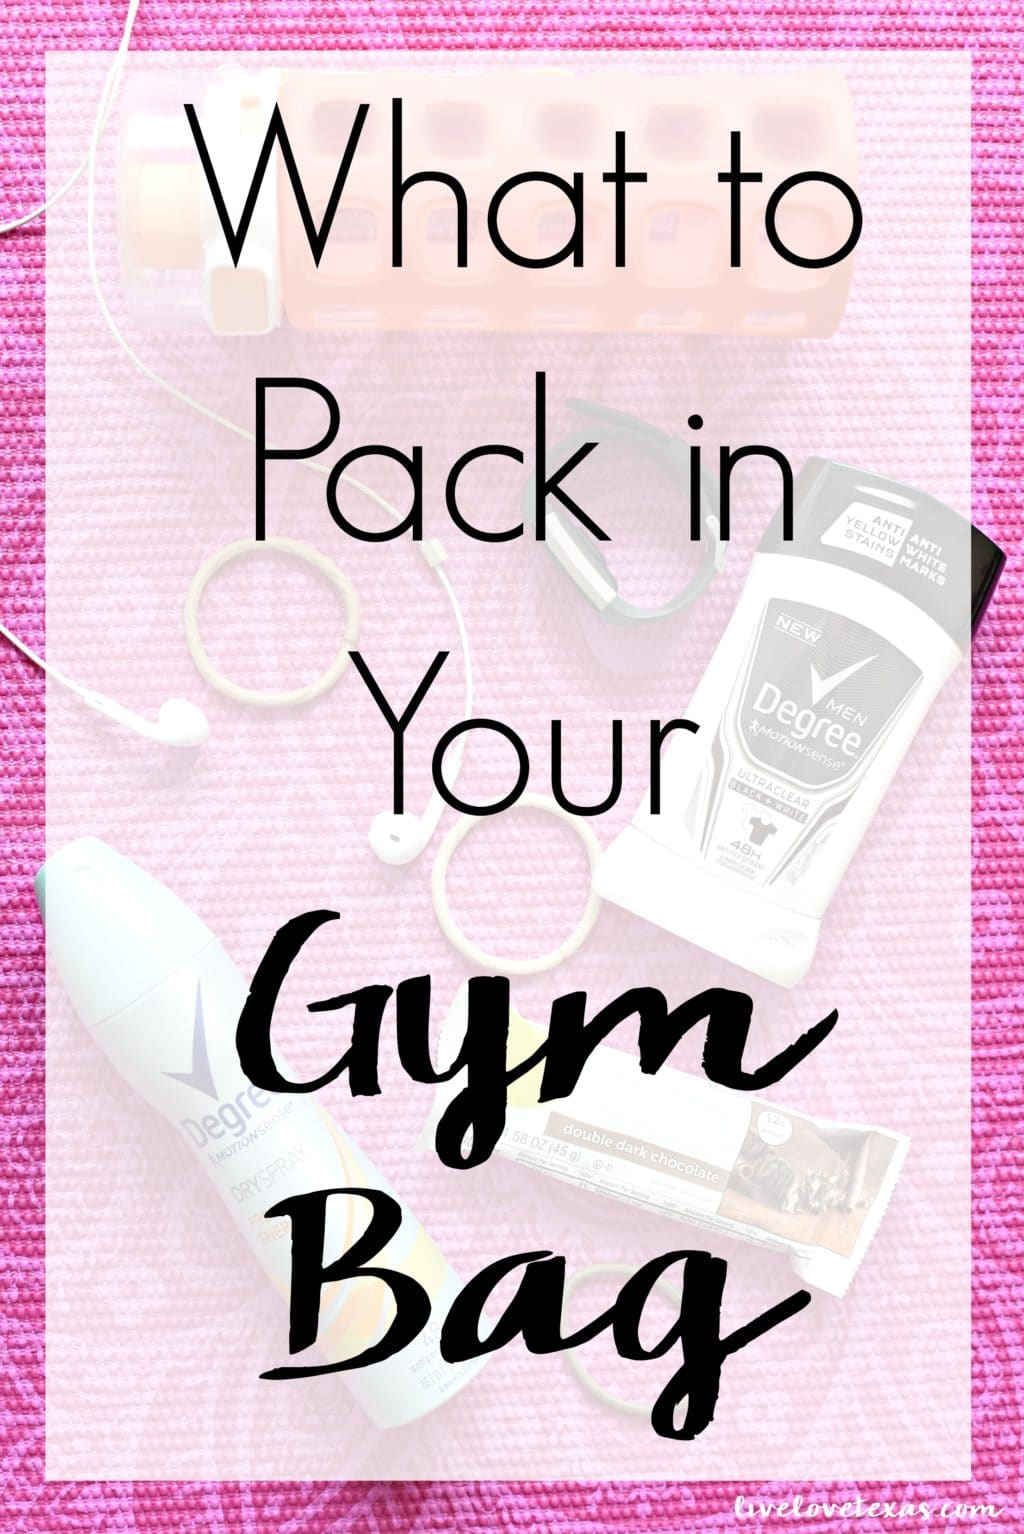 Heading to the gym? Don't leave home without learning What to Pack in Your Gym Bag so you're ready to get the most from your workout!